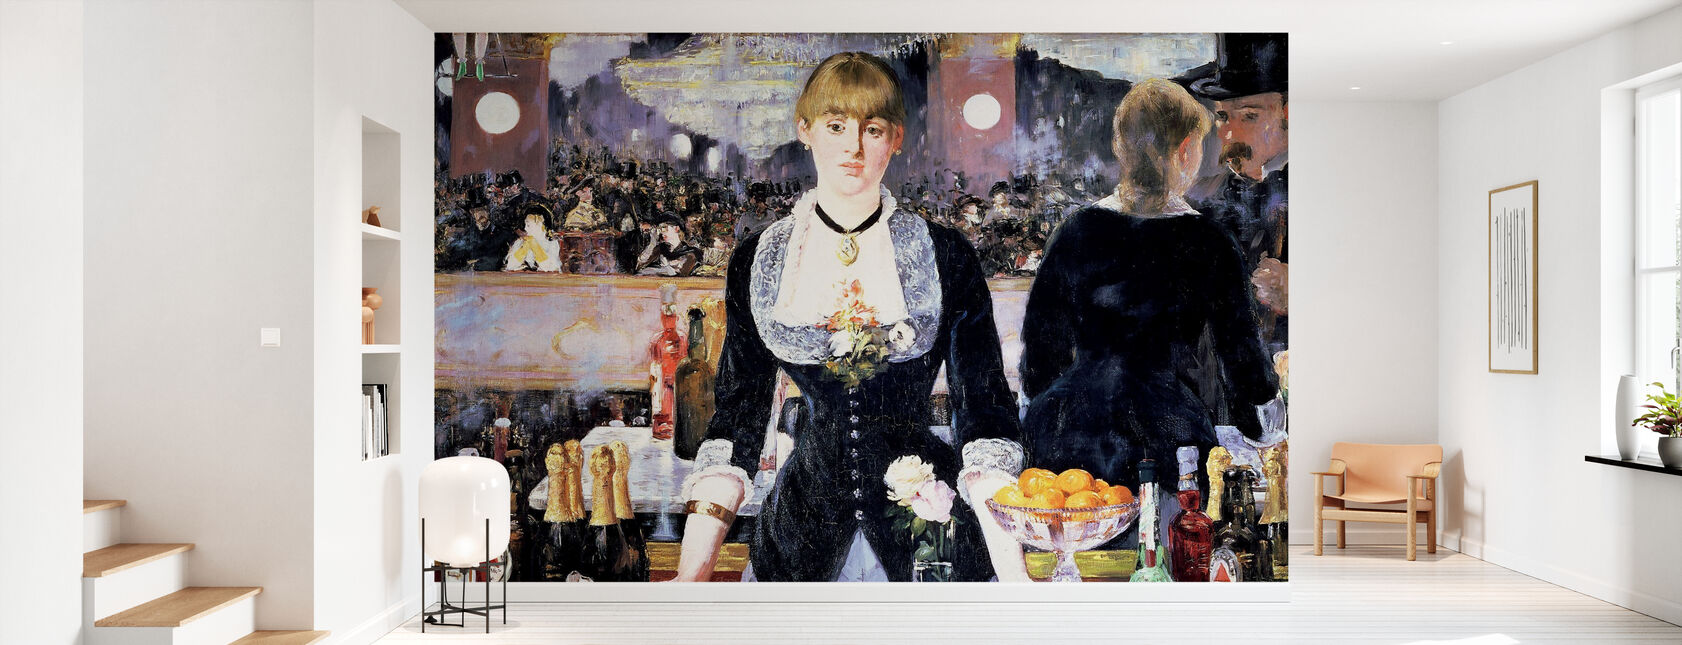 Bar på Folies-Bergere, Edouard Manet - Tapet - Gang